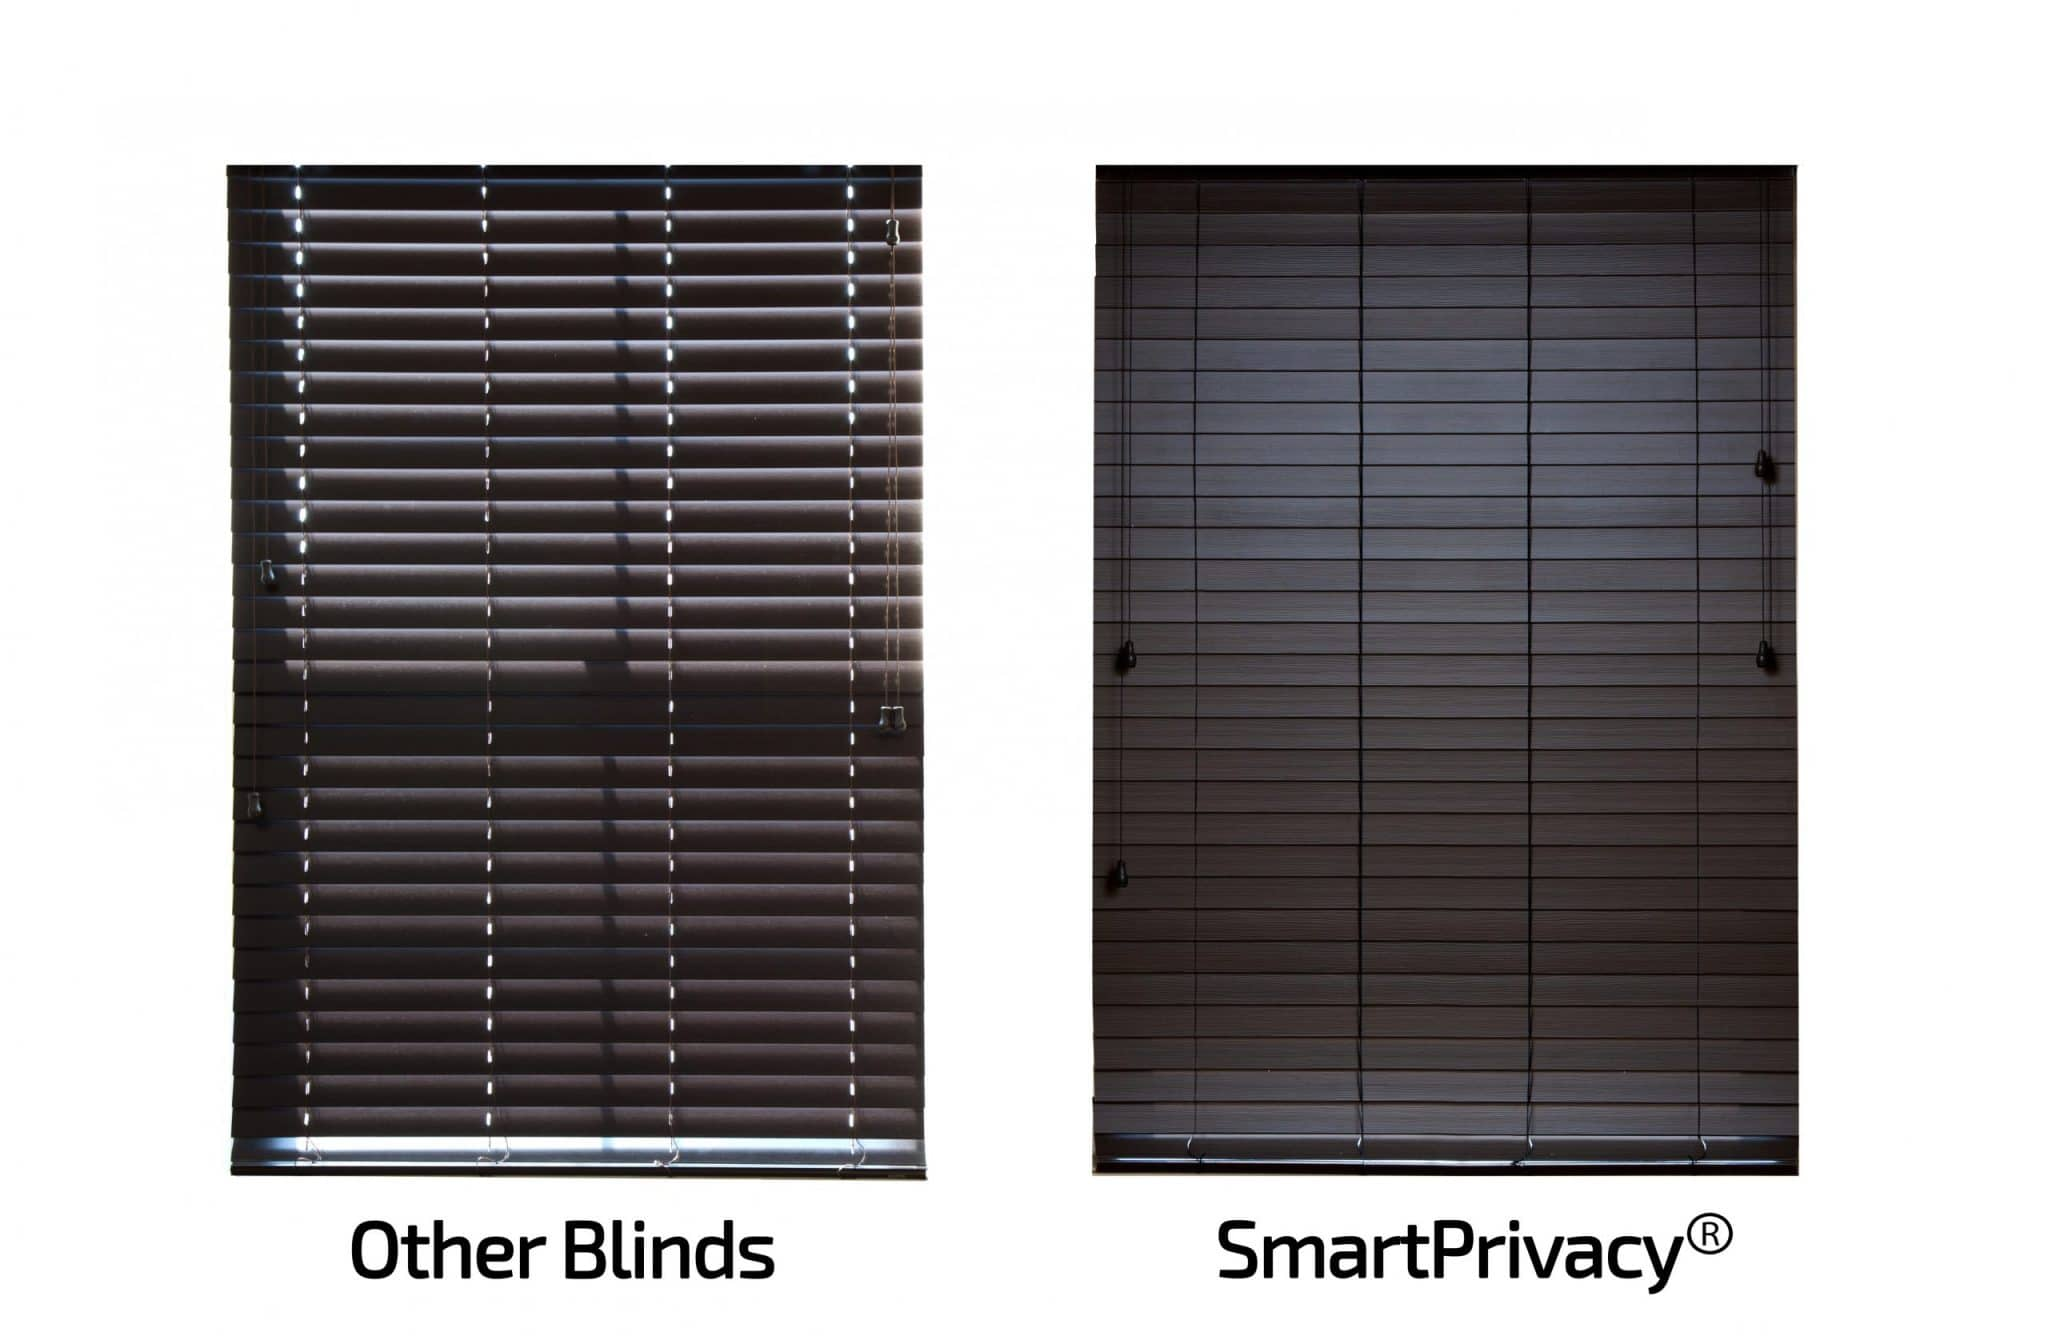 smartprivacy_comparison